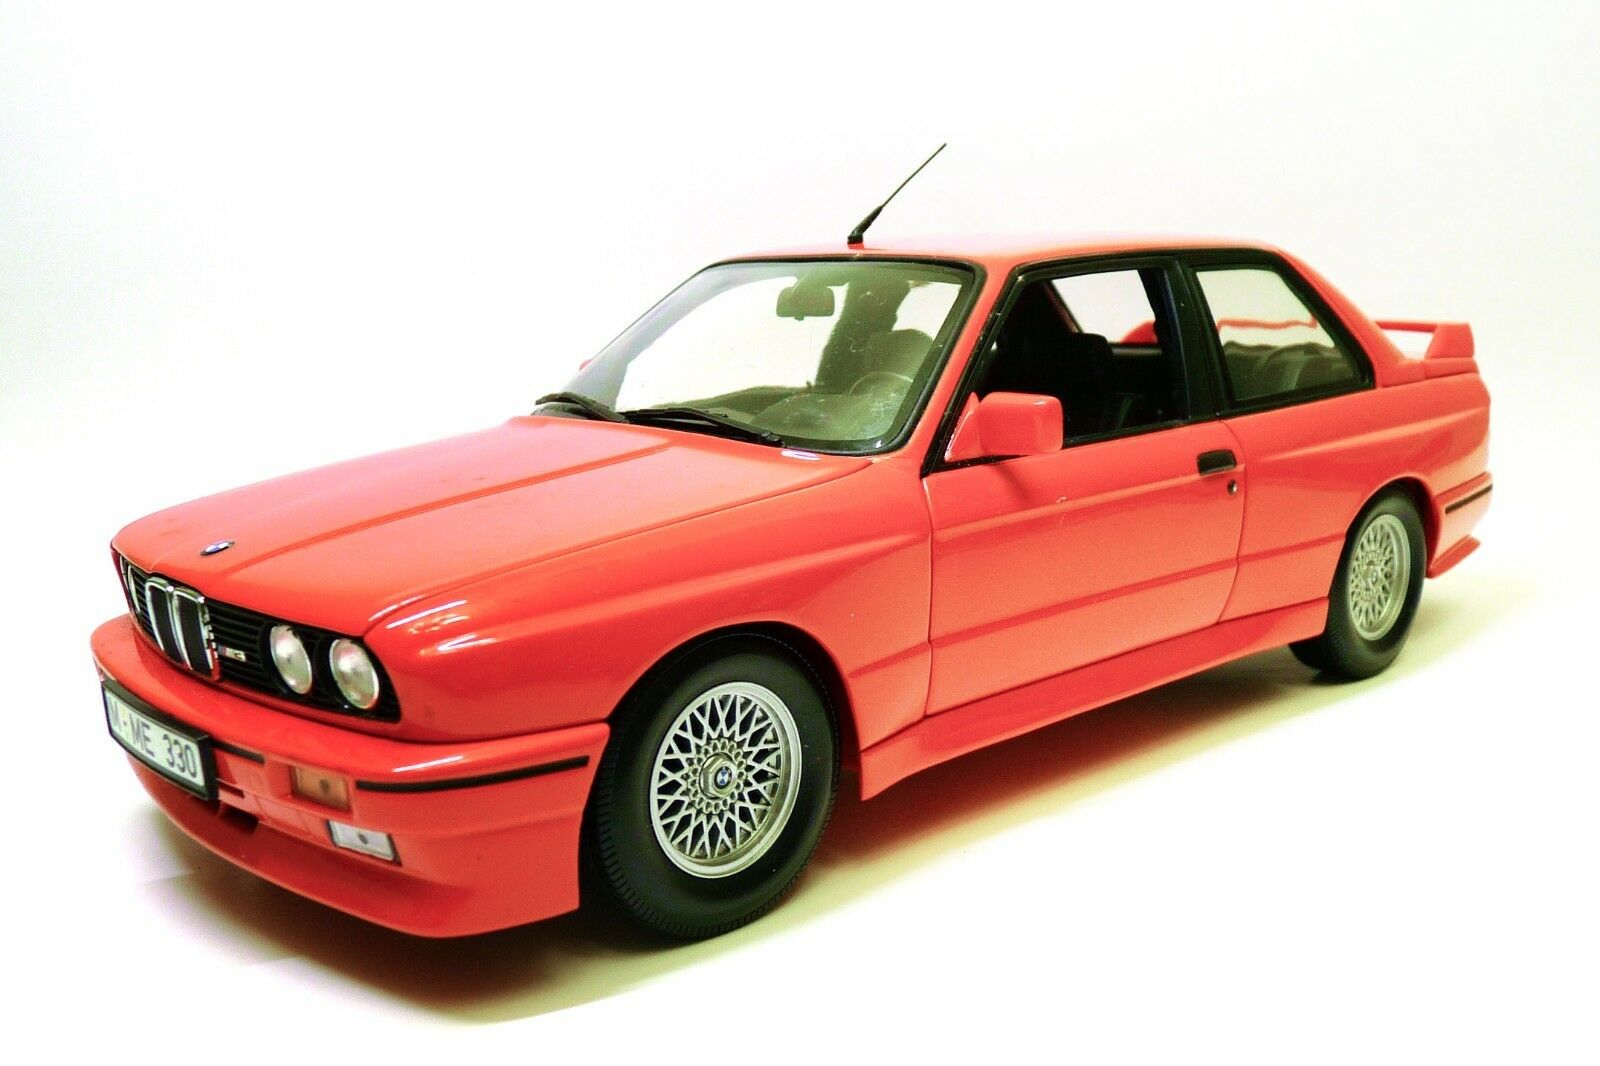 RARE BMW M3 E30 Minichamps Red Delaer ed 1 18